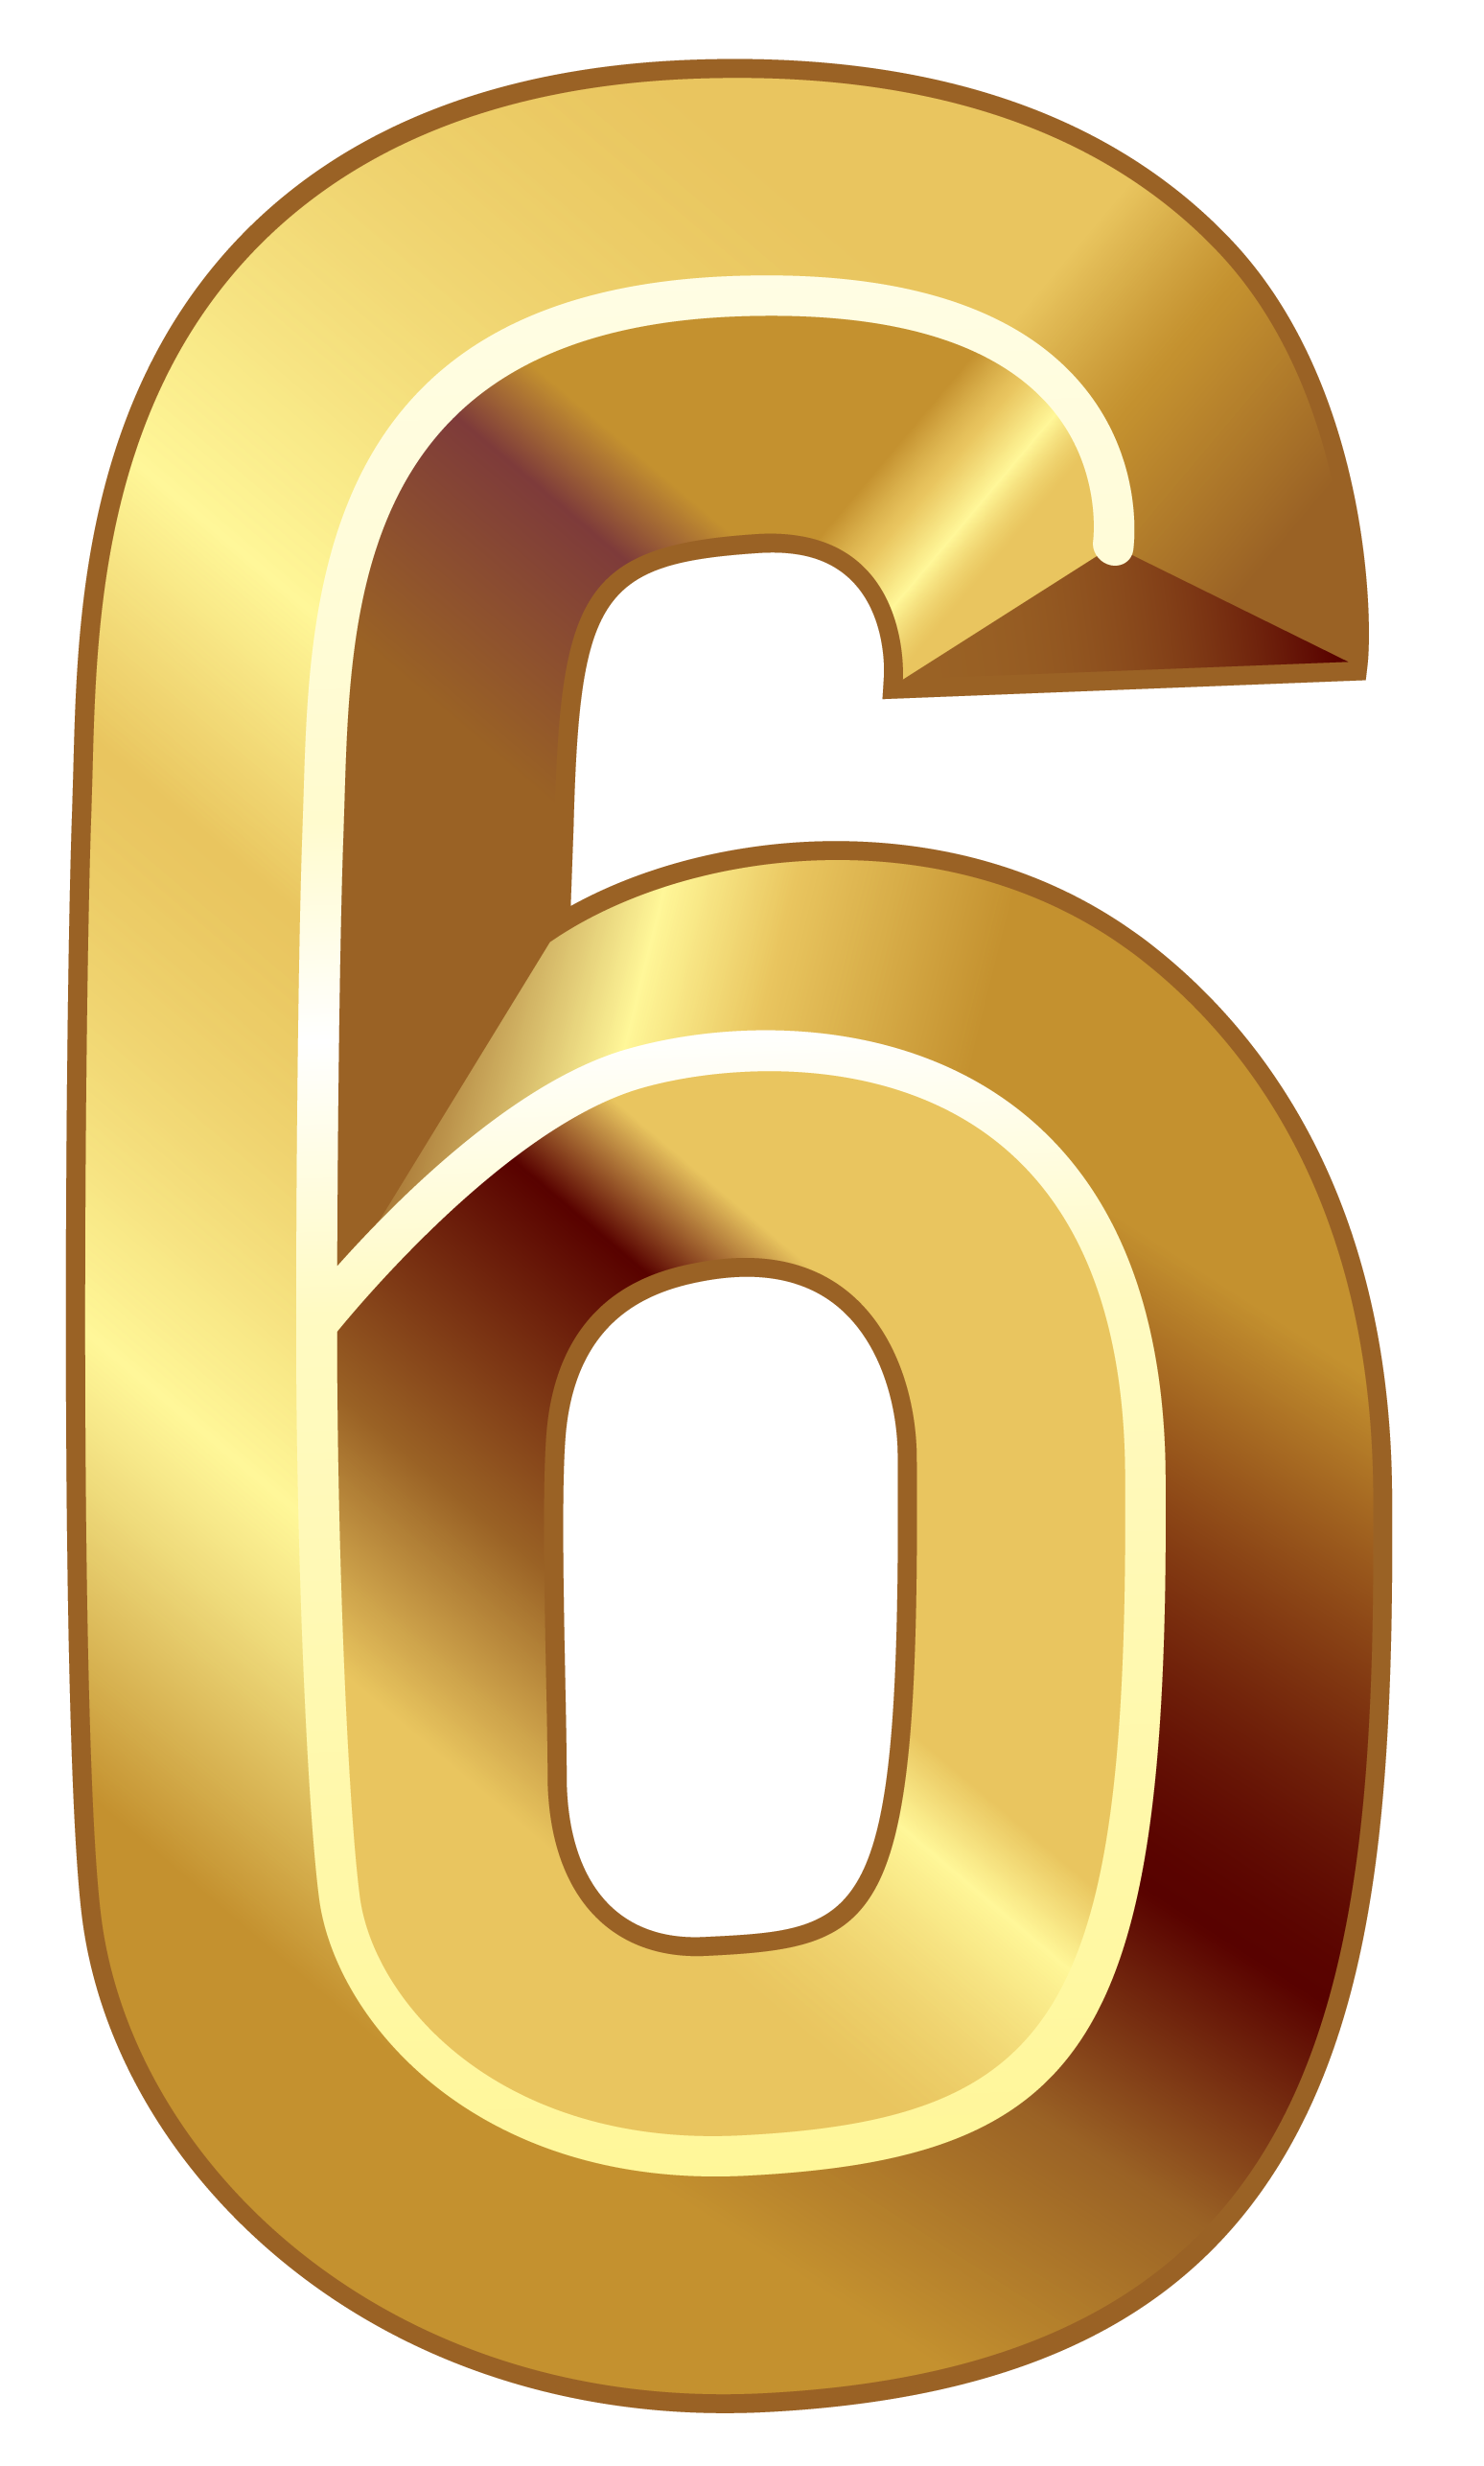 Gold number six png. Clipart key brass